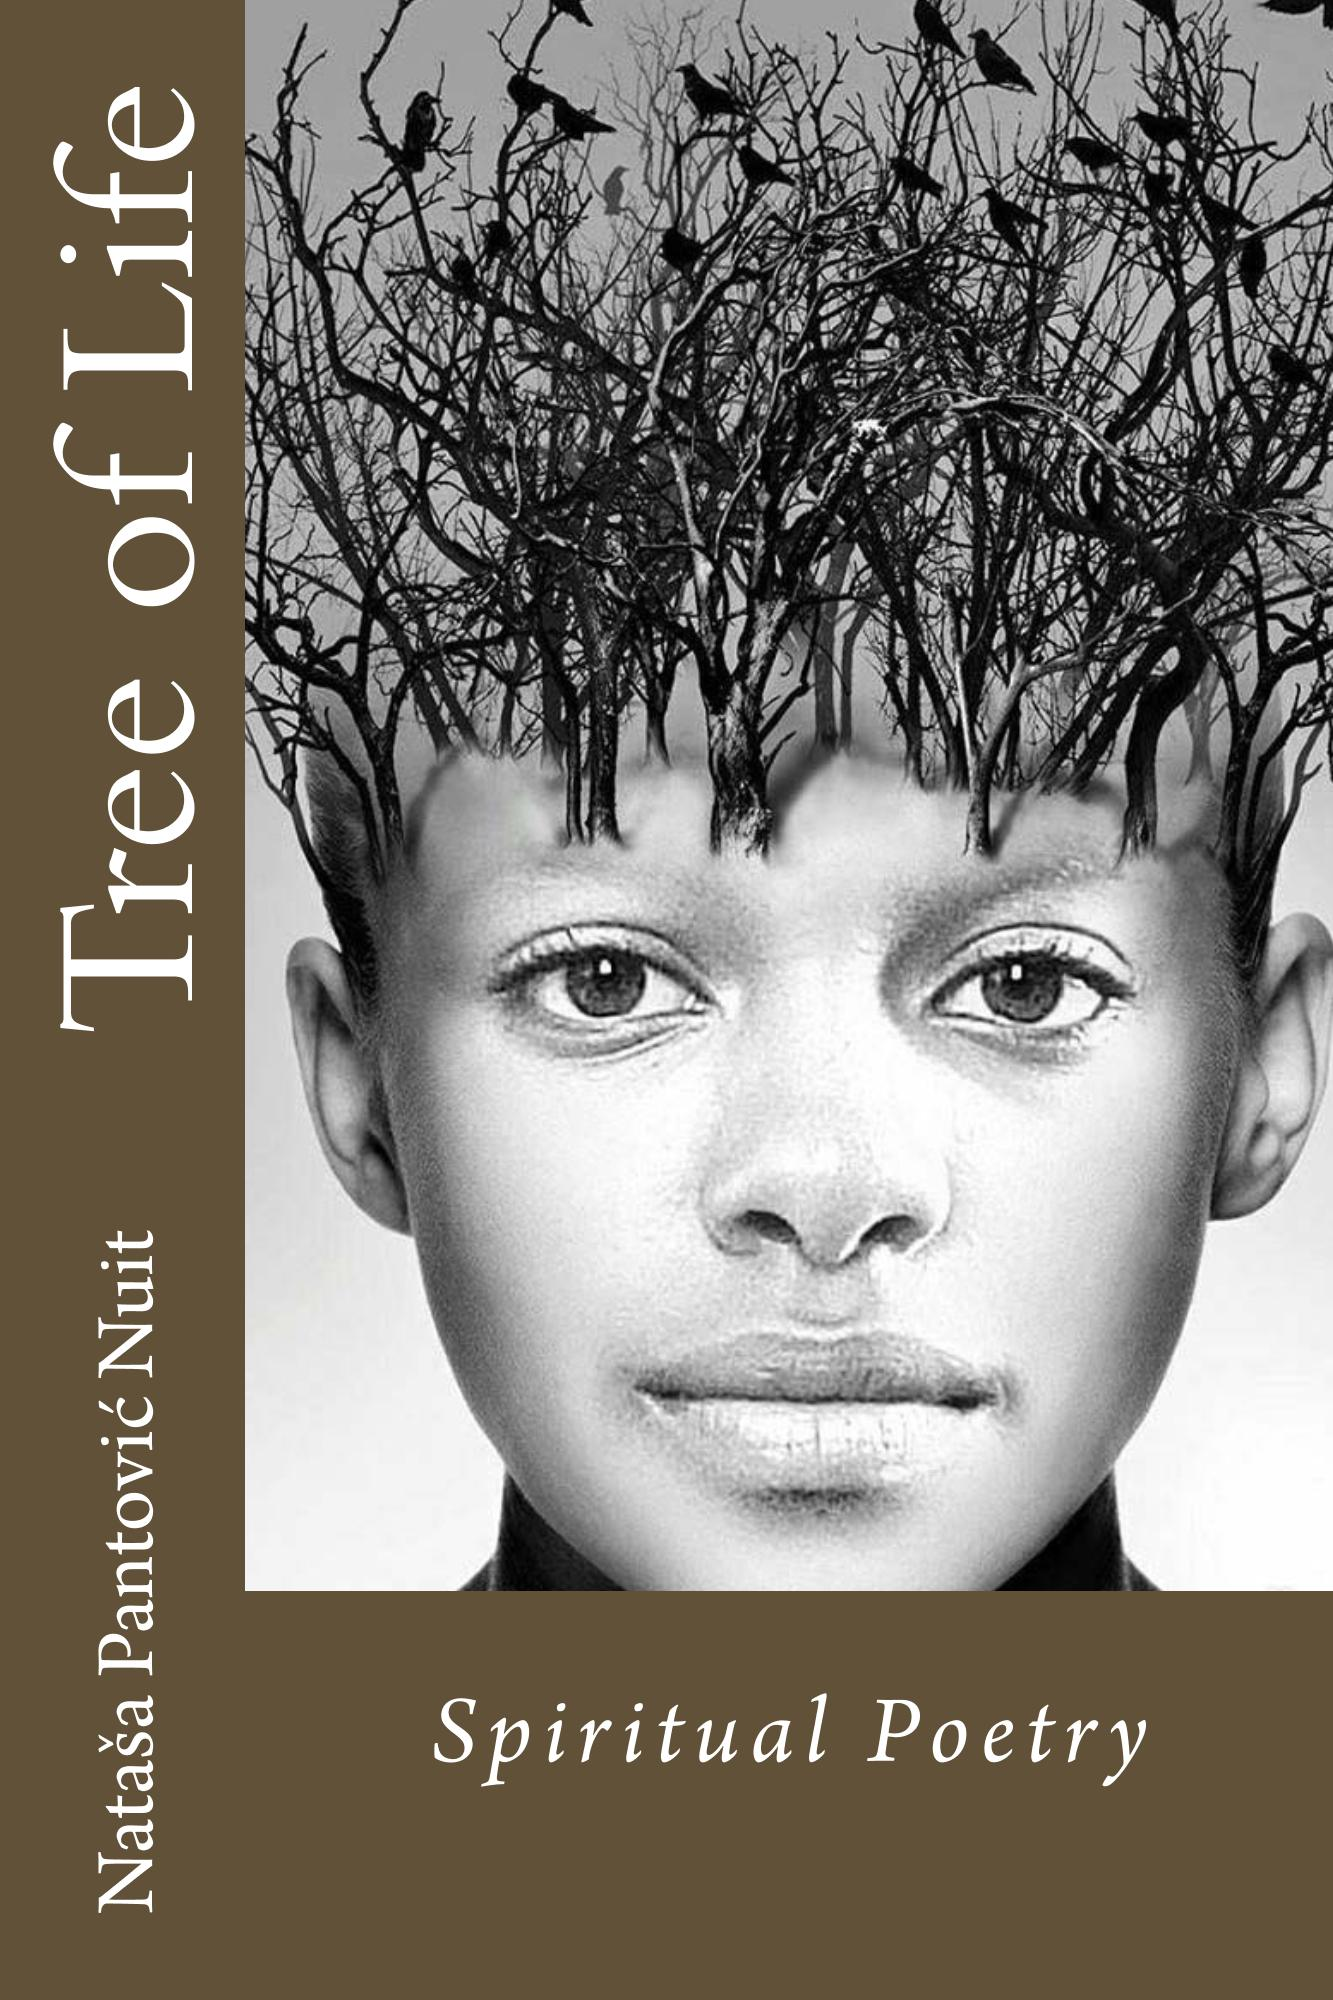 tree-of-life-spiritual-poetry-book